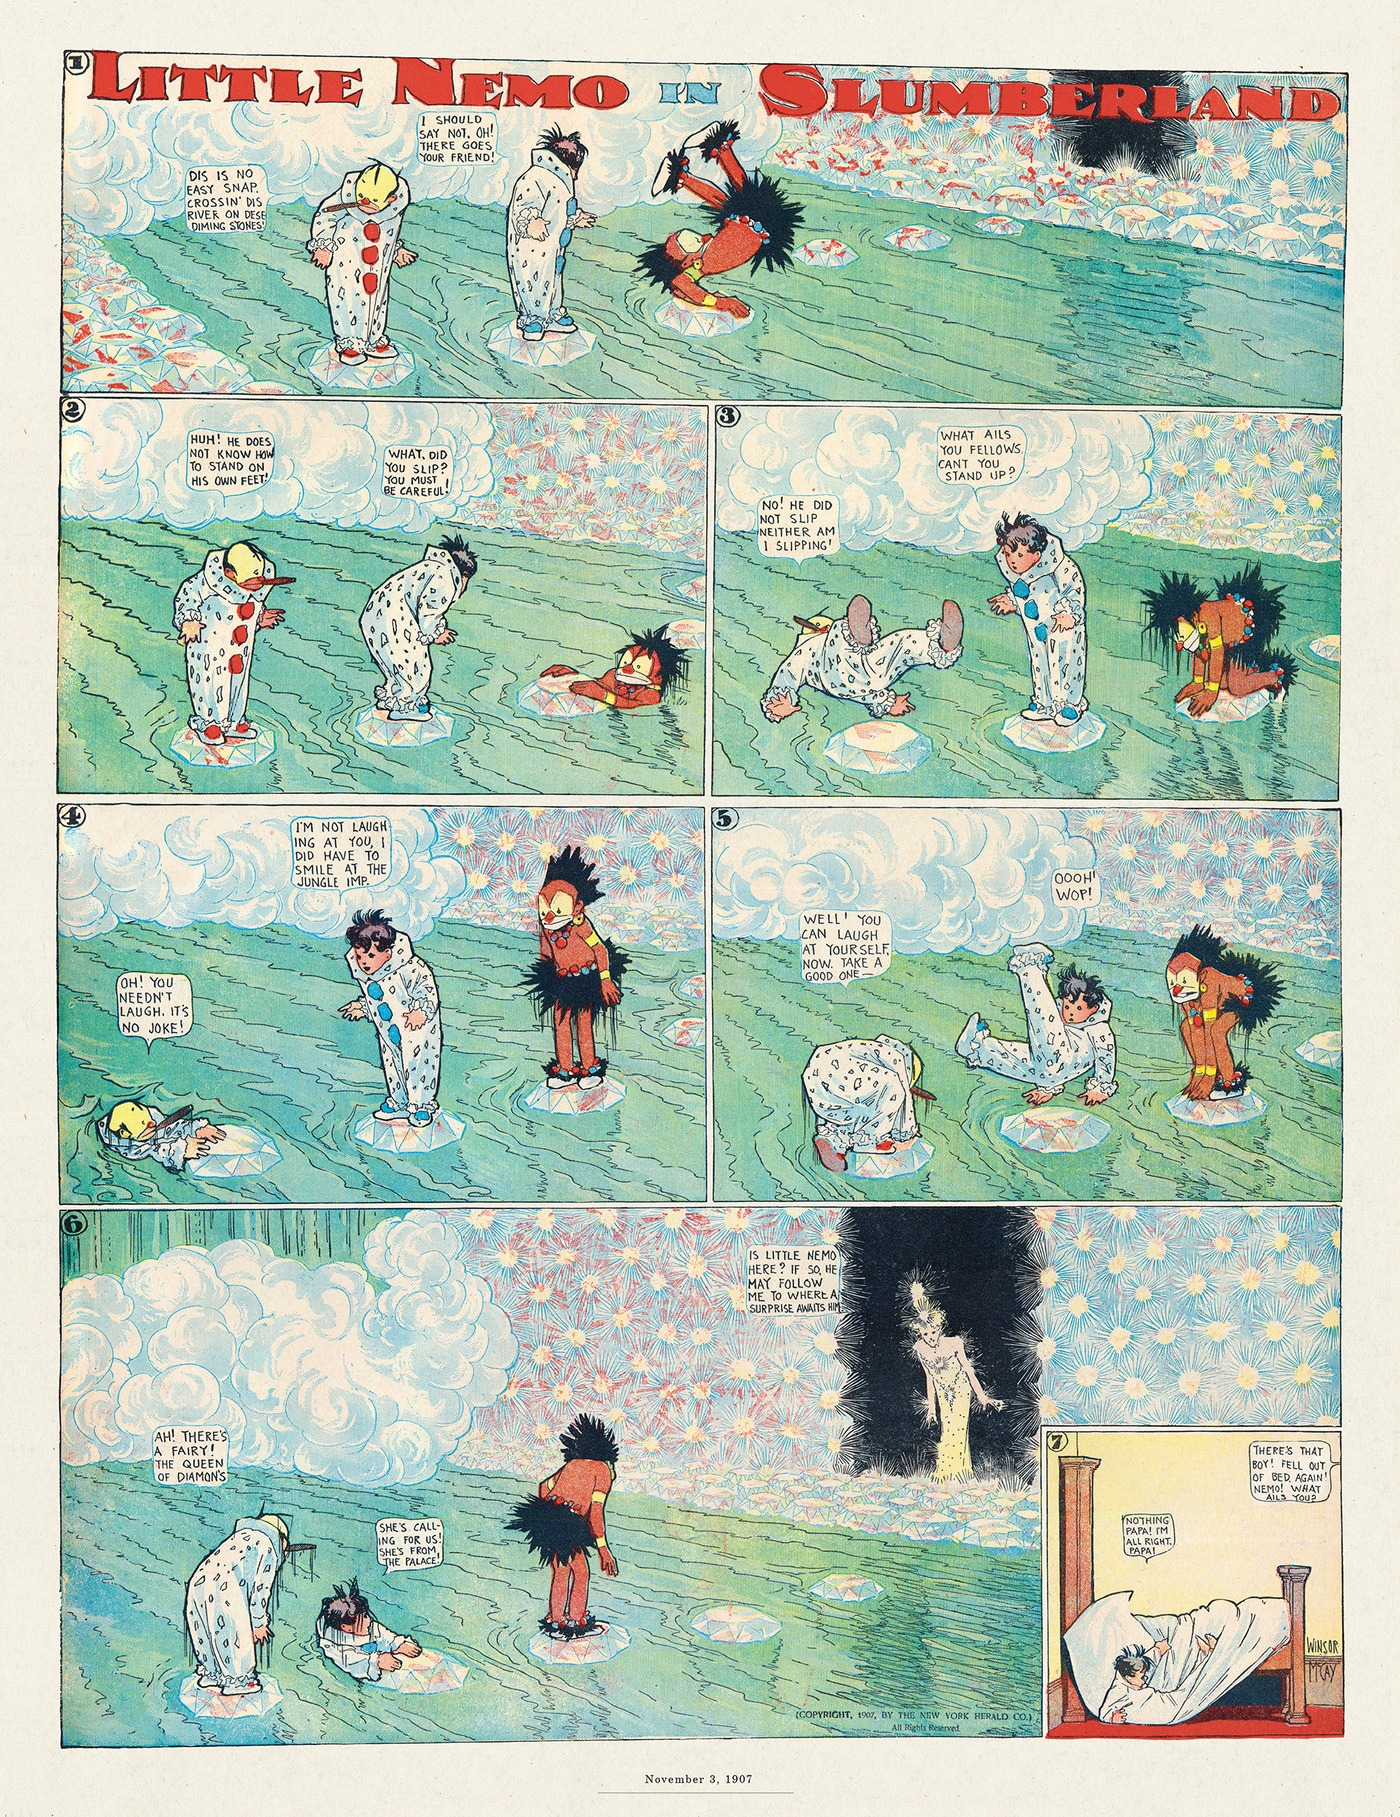 Little Nemo by Winsor McCay on Thu, 13 Aug 2020